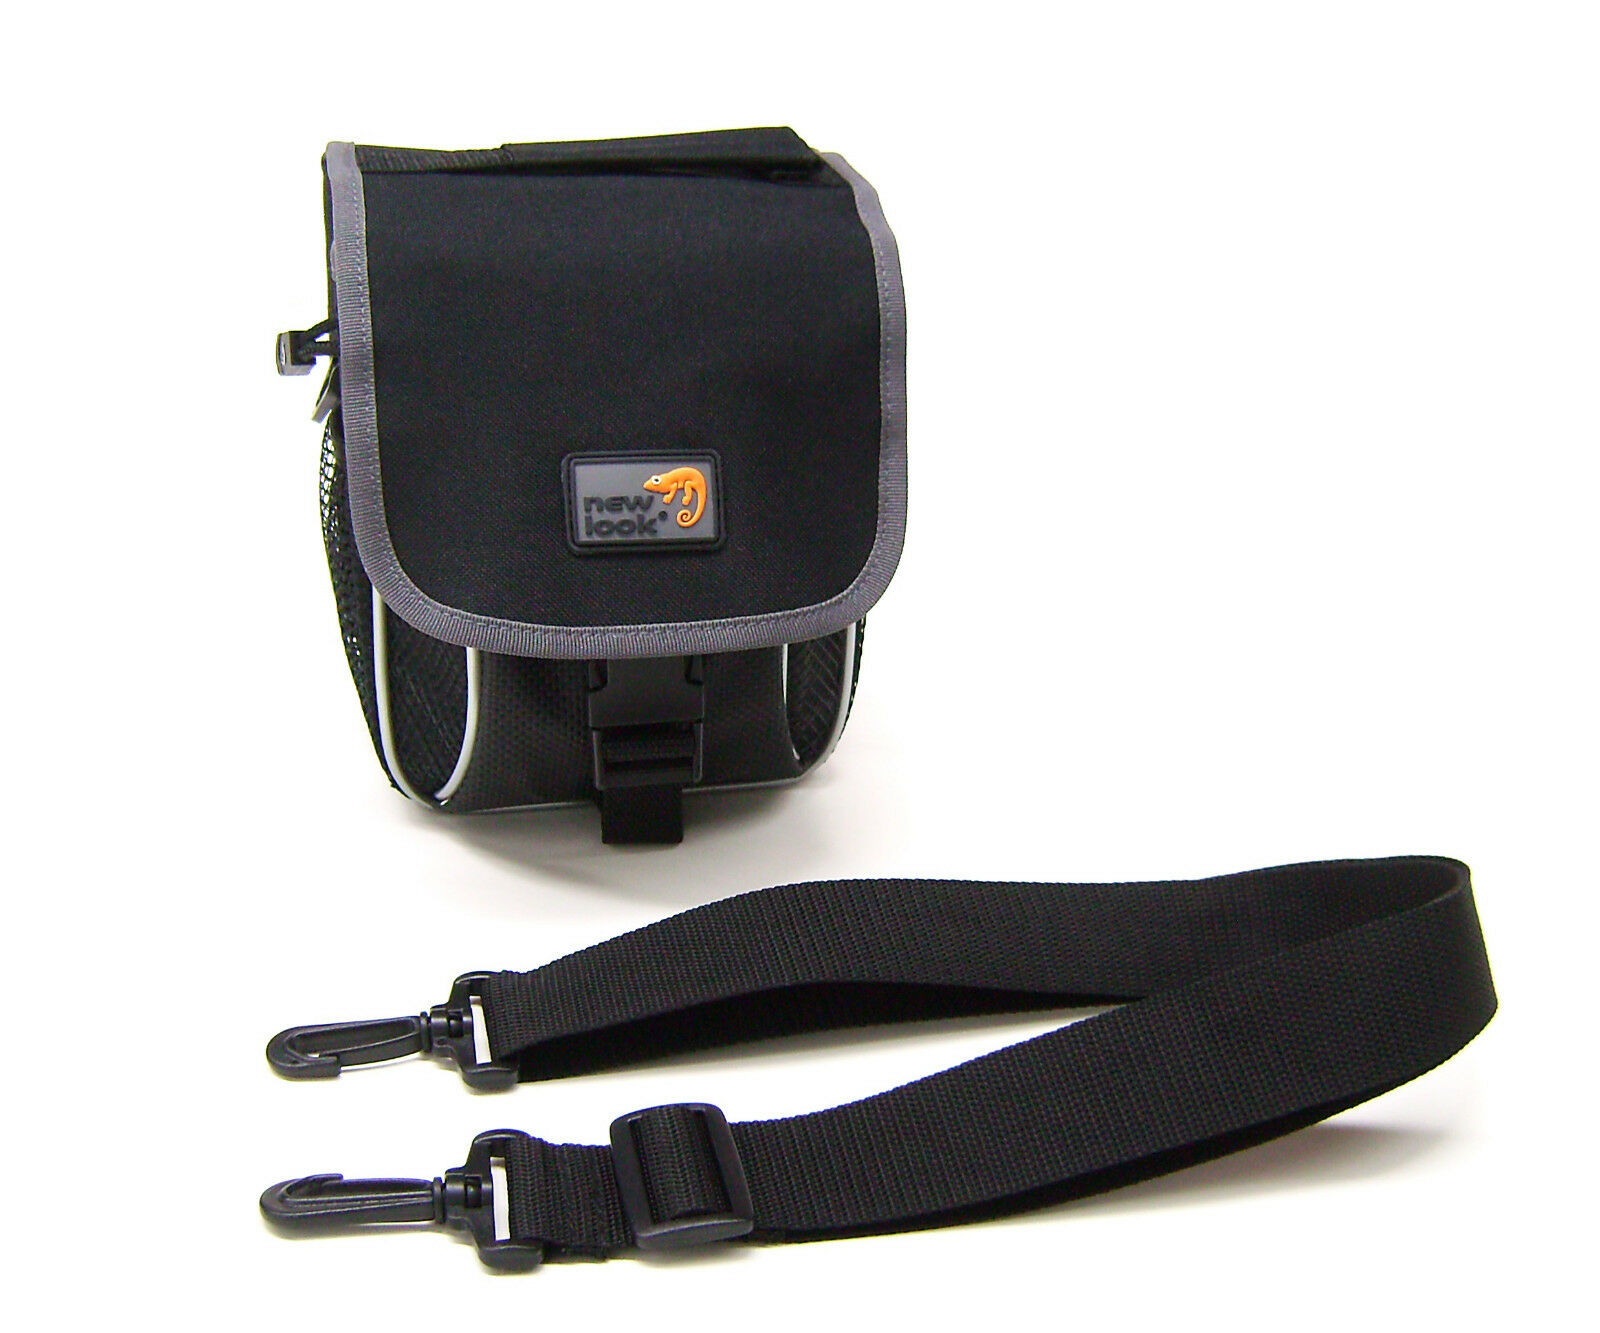 NEW Look Handlebar Bag +  Rixen & Kaul Adapter Mount for Handlebar Ø 22-26mm NEW   online store